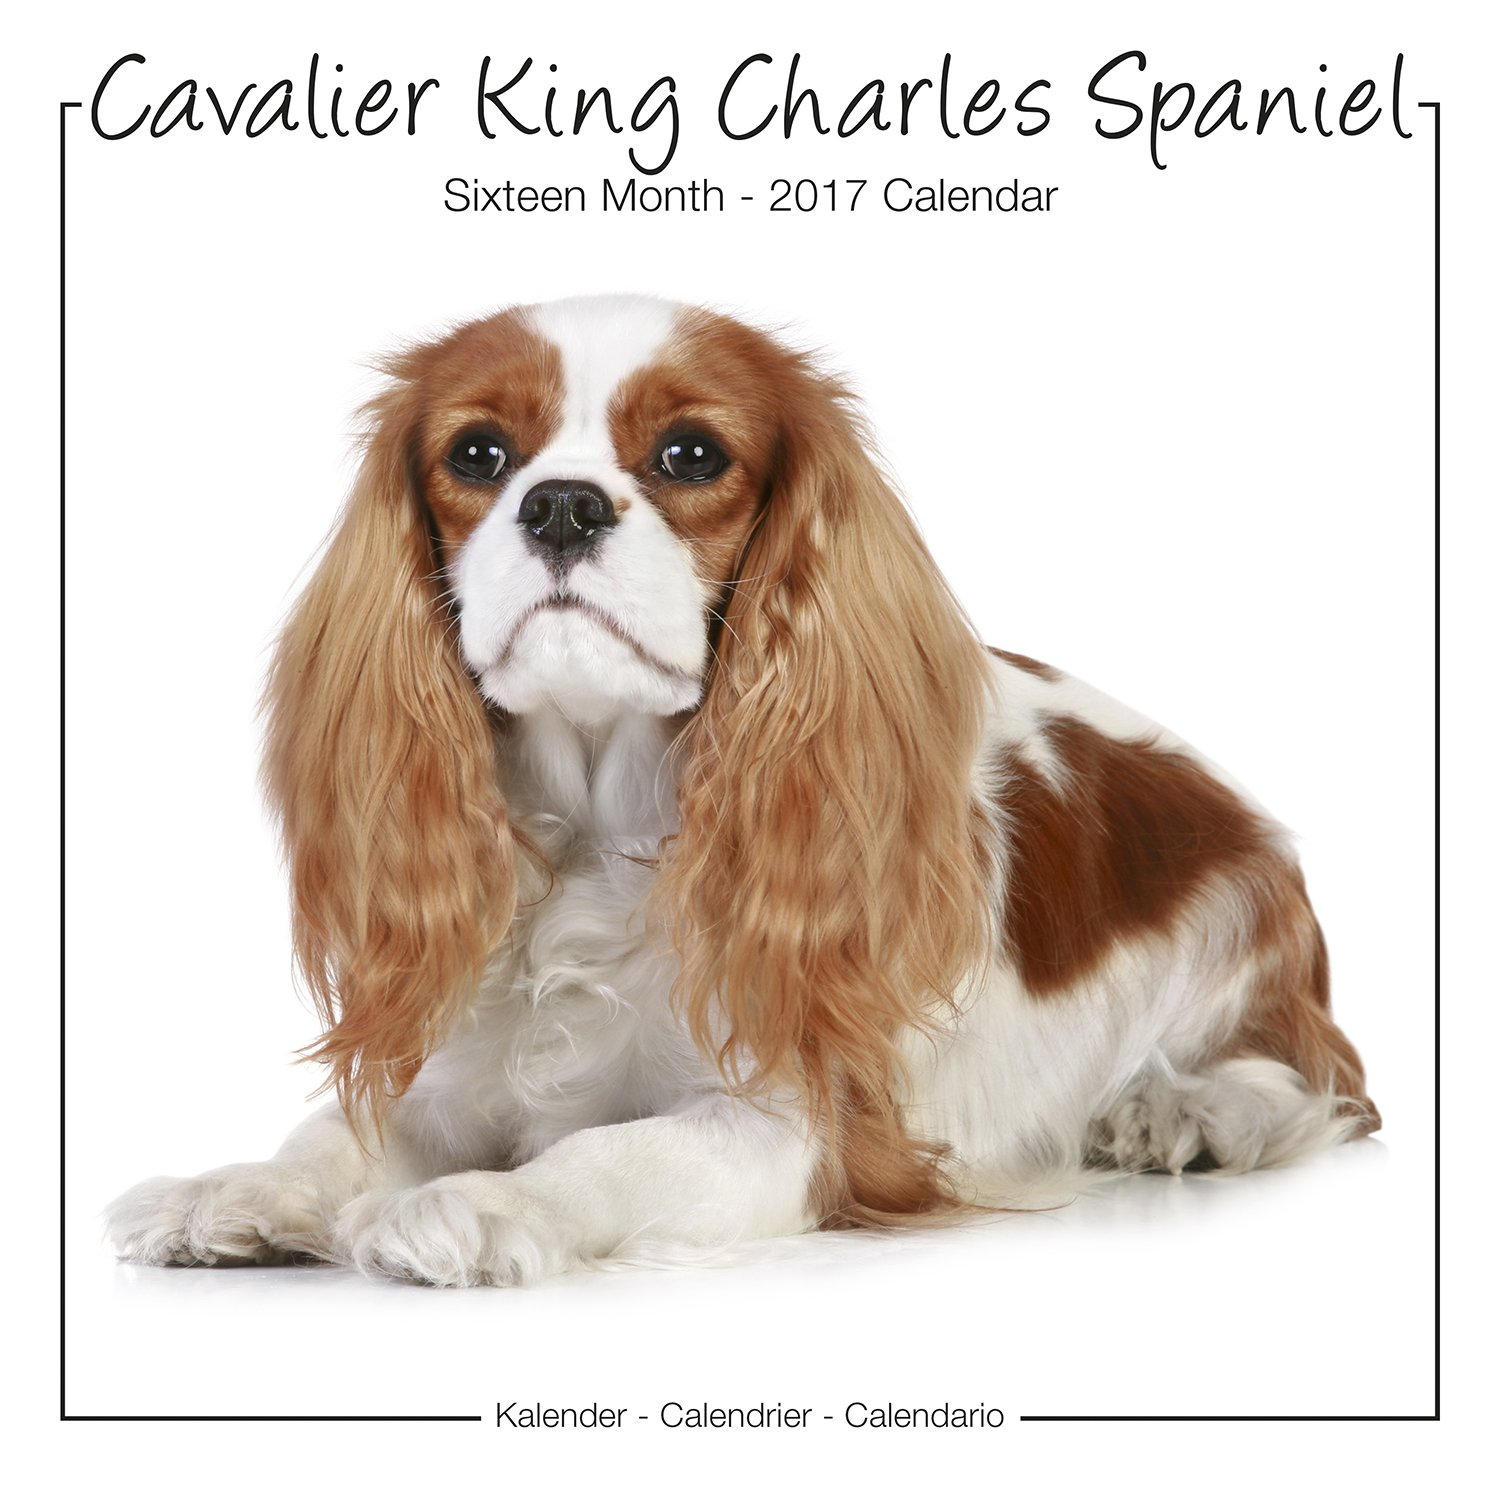 Cavalier king charles spaniel calendar dog breed calendars 2017 cavalier king charles spaniel calendar dog breed calendars 2017 dog calendar calendars 2016 2017 wall calendars 16 month wall calendar by avonside nvjuhfo Image collections